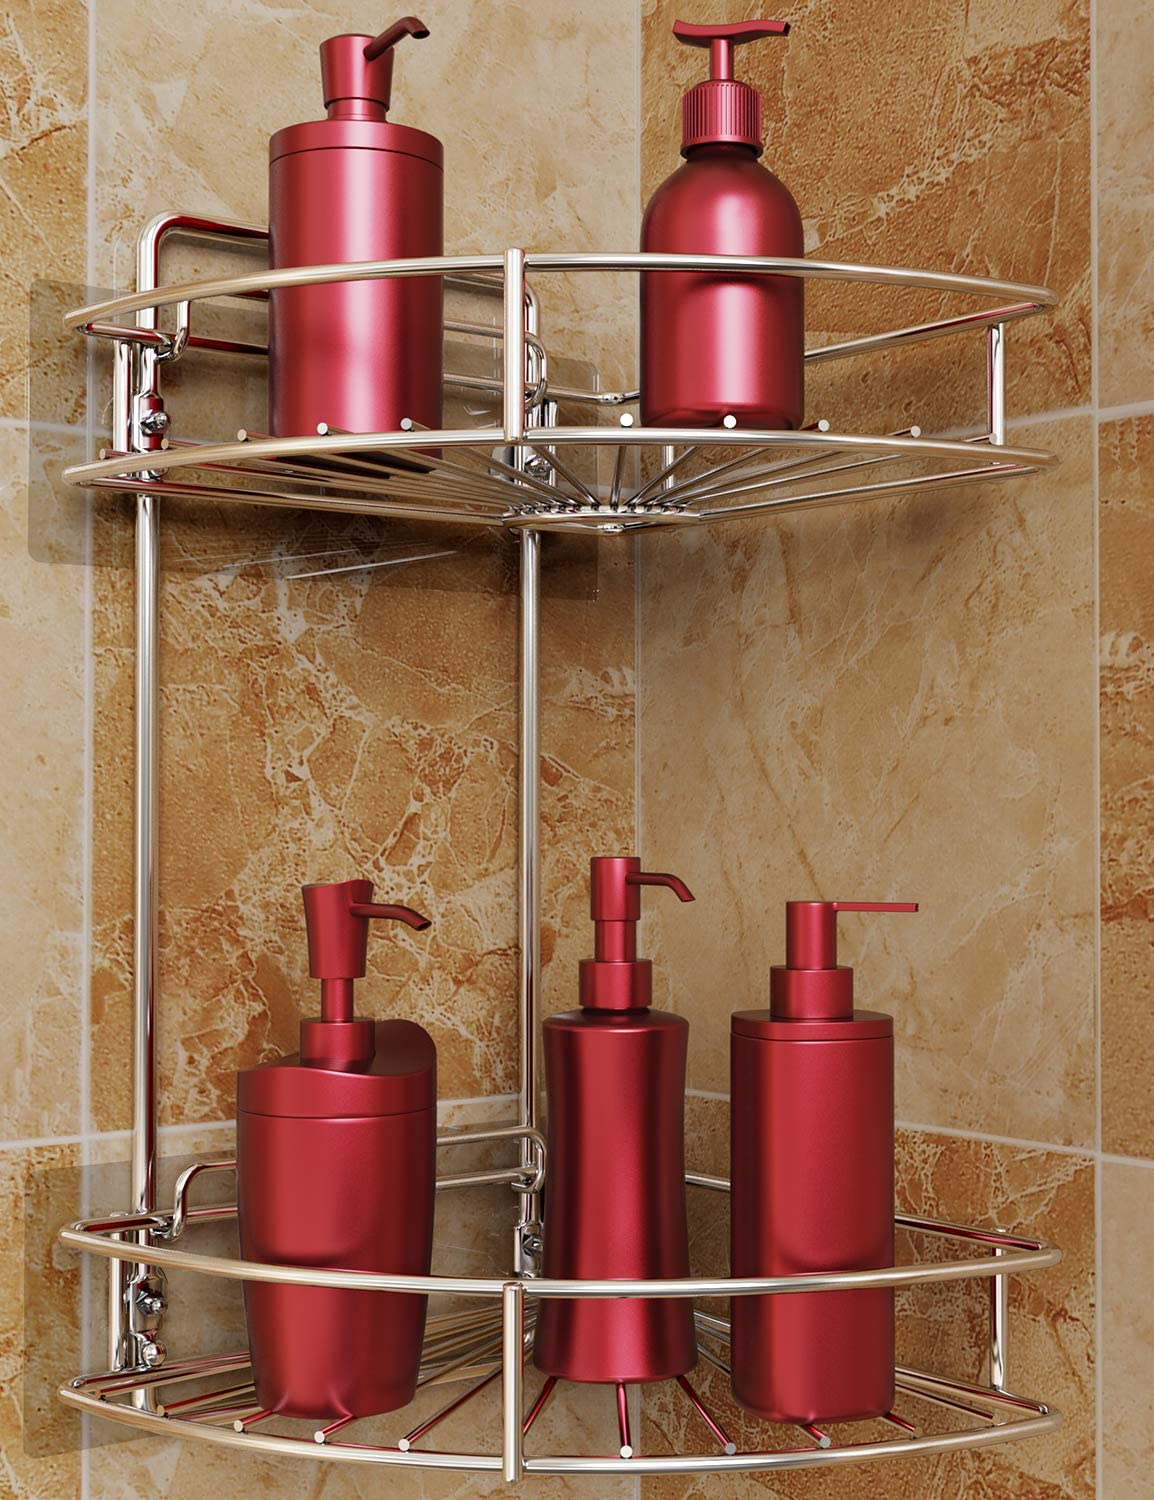 2 tier corner Gifts shower caddy Vdomus stainless b no drilling service steel